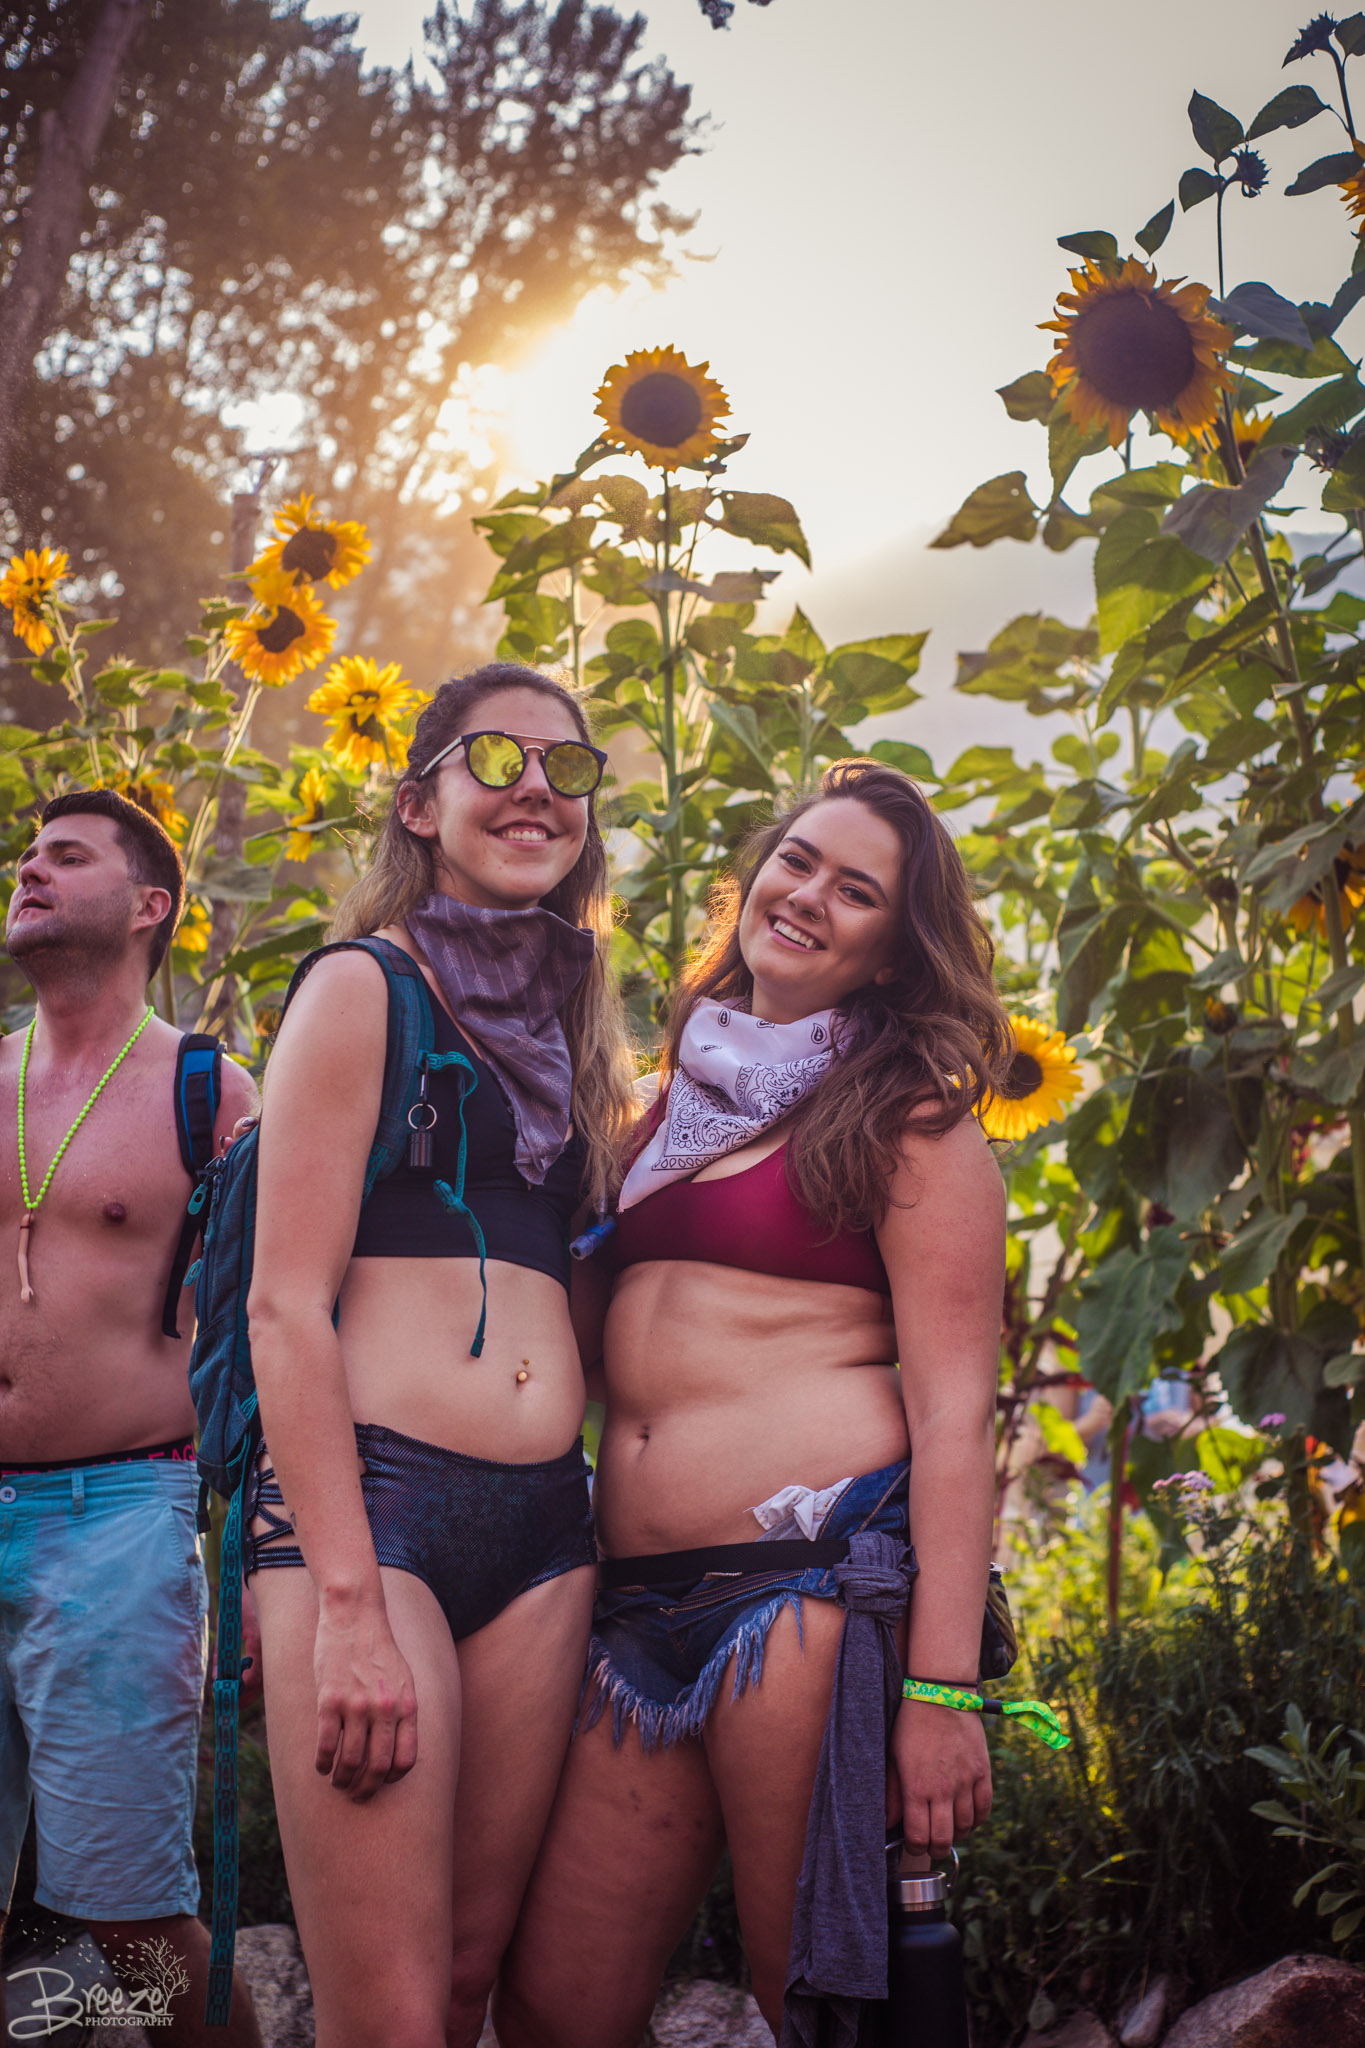 Brie'Ana Breeze Photography & Media - Shambhala 2018-0093.jpg